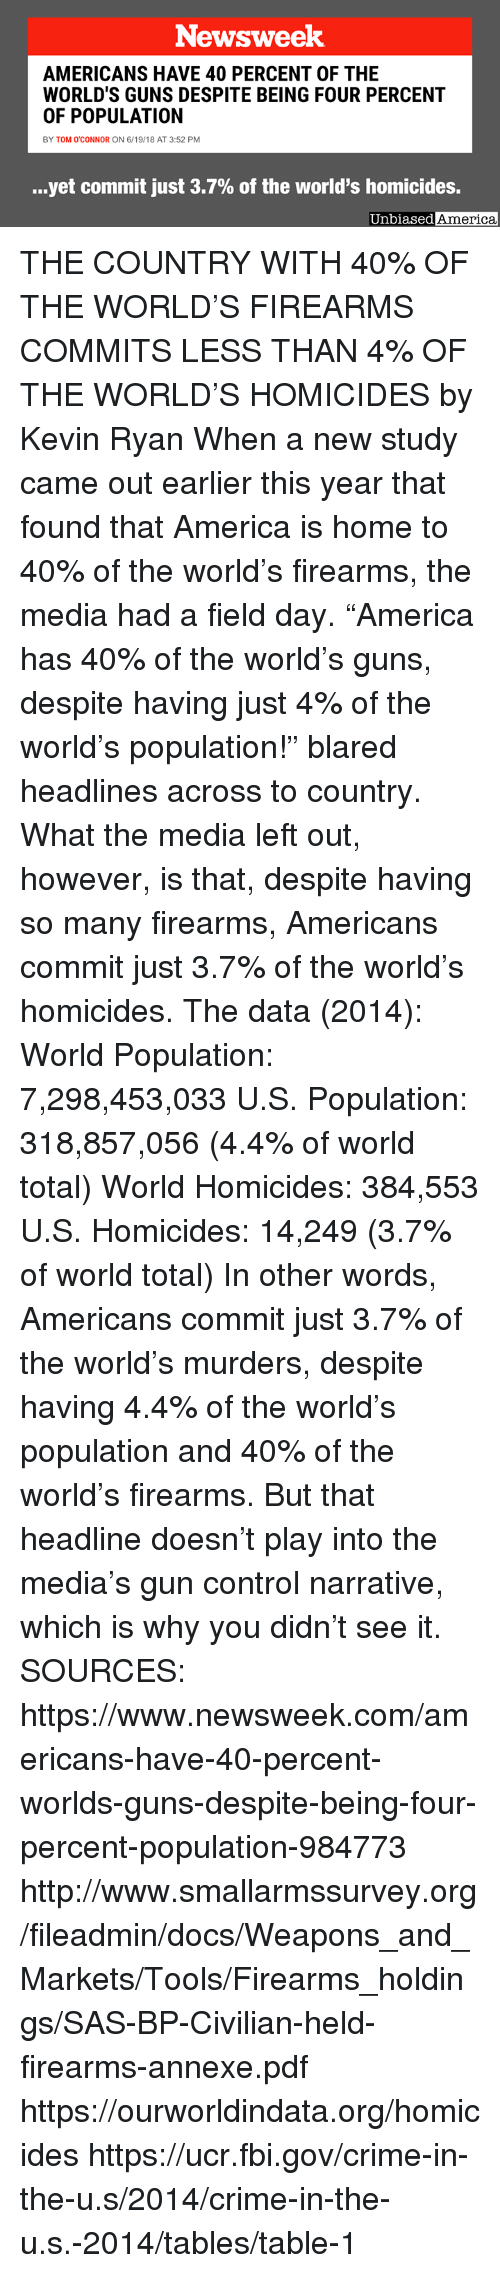 "America, Crime, and Fbi: Newsweek  AMERICANS HAVE 40 PERCENT OF THE  WORLD'S GUNS DESPITE BEING FOUR PERCENT  OF POPULATION  BY TOM O'CONNOR ON 6/19/18 AT 3:52 PM  yet commit just 3.7% of the world's homicides.  Unbiased  America THE COUNTRY WITH 40% OF THE WORLD'S FIREARMS COMMITS LESS THAN 4% OF THE WORLD'S HOMICIDES by Kevin Ryan  When a new study came out earlier this year that found that America is home to 40% of the world's firearms, the media had a field day.  ""America has 40% of the world's guns, despite having just 4% of the world's population!"" blared headlines across to country.  What the media left out, however, is that, despite having so many firearms, Americans commit just 3.7% of the world's homicides.  The data (2014):  World Population:  7,298,453,033 U.S. Population:  318,857,056 (4.4% of world total)  World Homicides: 384,553  U.S. Homicides: 14,249 (3.7% of world total)  In other words, Americans commit just 3.7% of the world's murders, despite having 4.4% of the world's population and 40% of the world's firearms.  But that headline doesn't play into the media's gun control narrative, which is why you didn't see it.   SOURCES: https://www.newsweek.com/americans-have-40-percent-worlds-guns-despite-being-four-percent-population-984773 http://www.smallarmssurvey.org/fileadmin/docs/Weapons_and_Markets/Tools/Firearms_holdings/SAS-BP-Civilian-held-firearms-annexe.pdf https://ourworldindata.org/homicides https://ucr.fbi.gov/crime-in-the-u.s/2014/crime-in-the-u.s.-2014/tables/table-1"